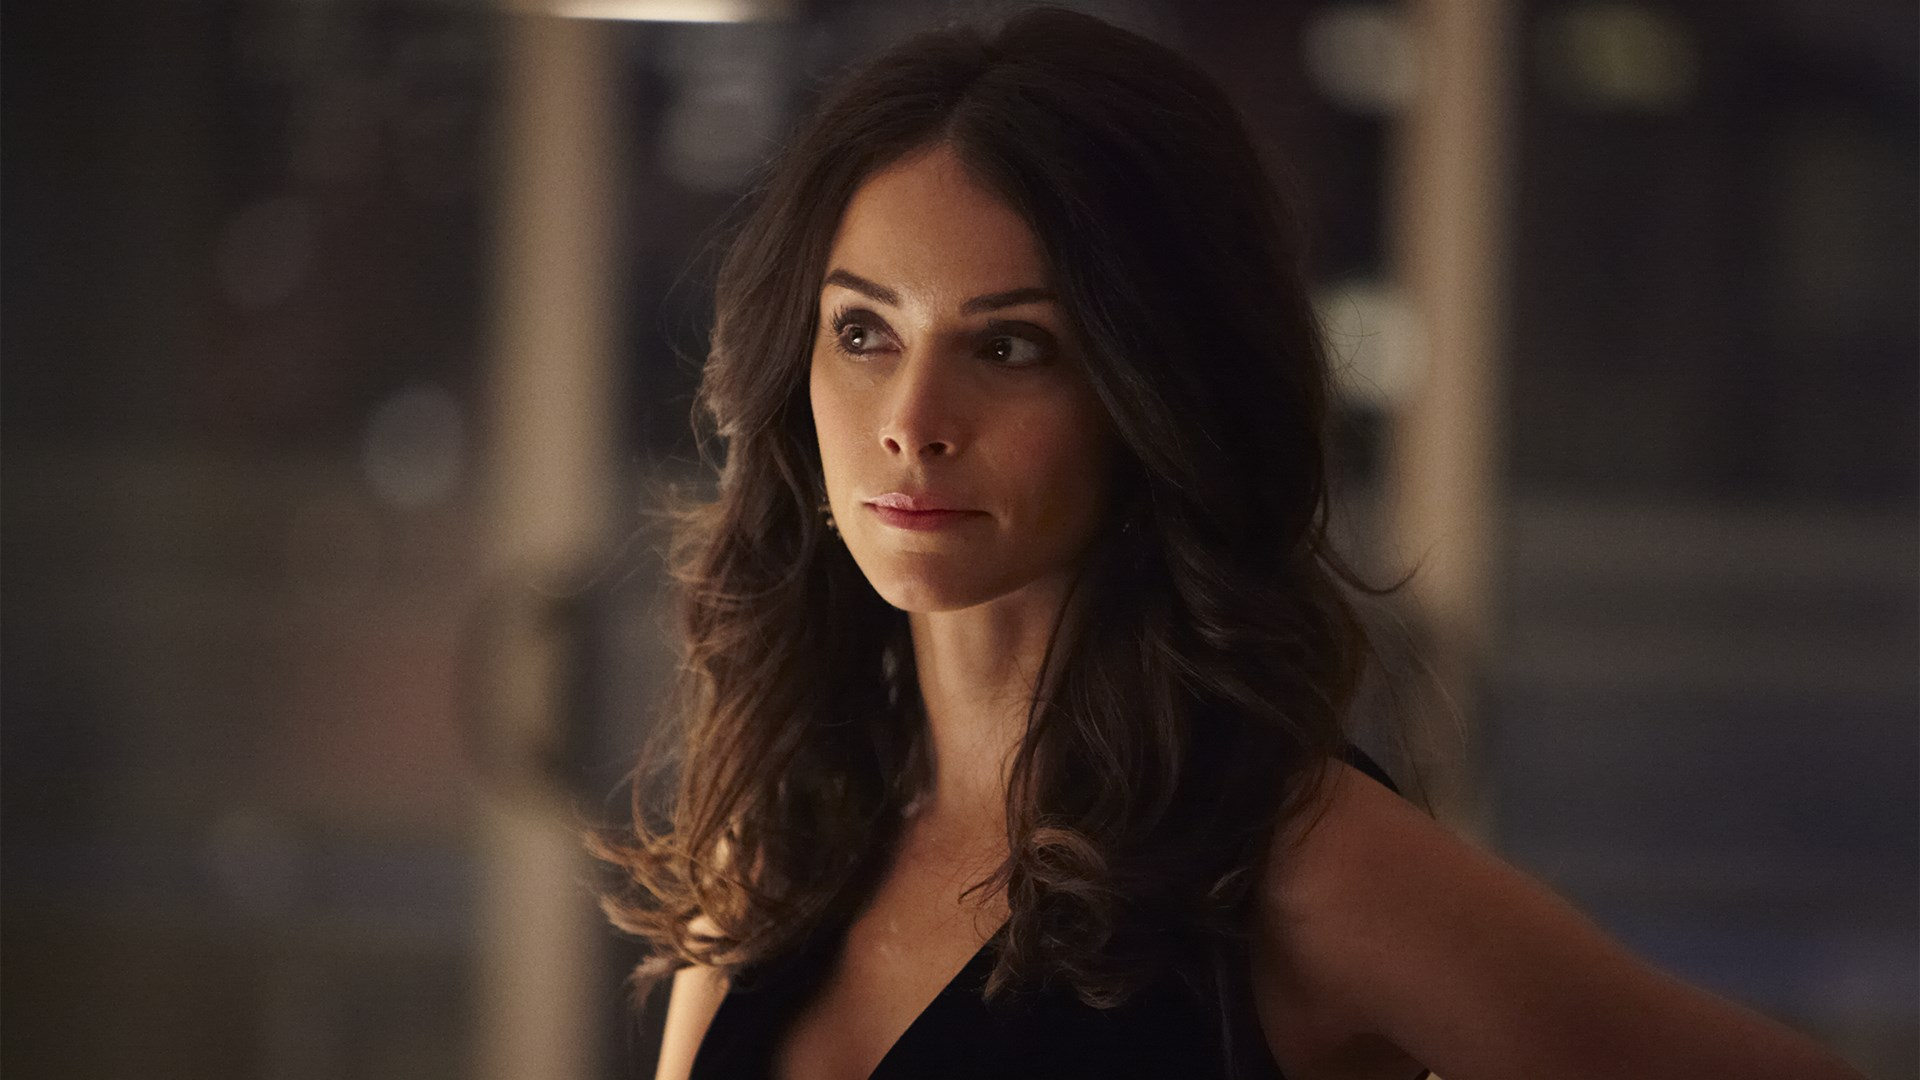 1920x1080 - Abigail Spencer Wallpapers 6